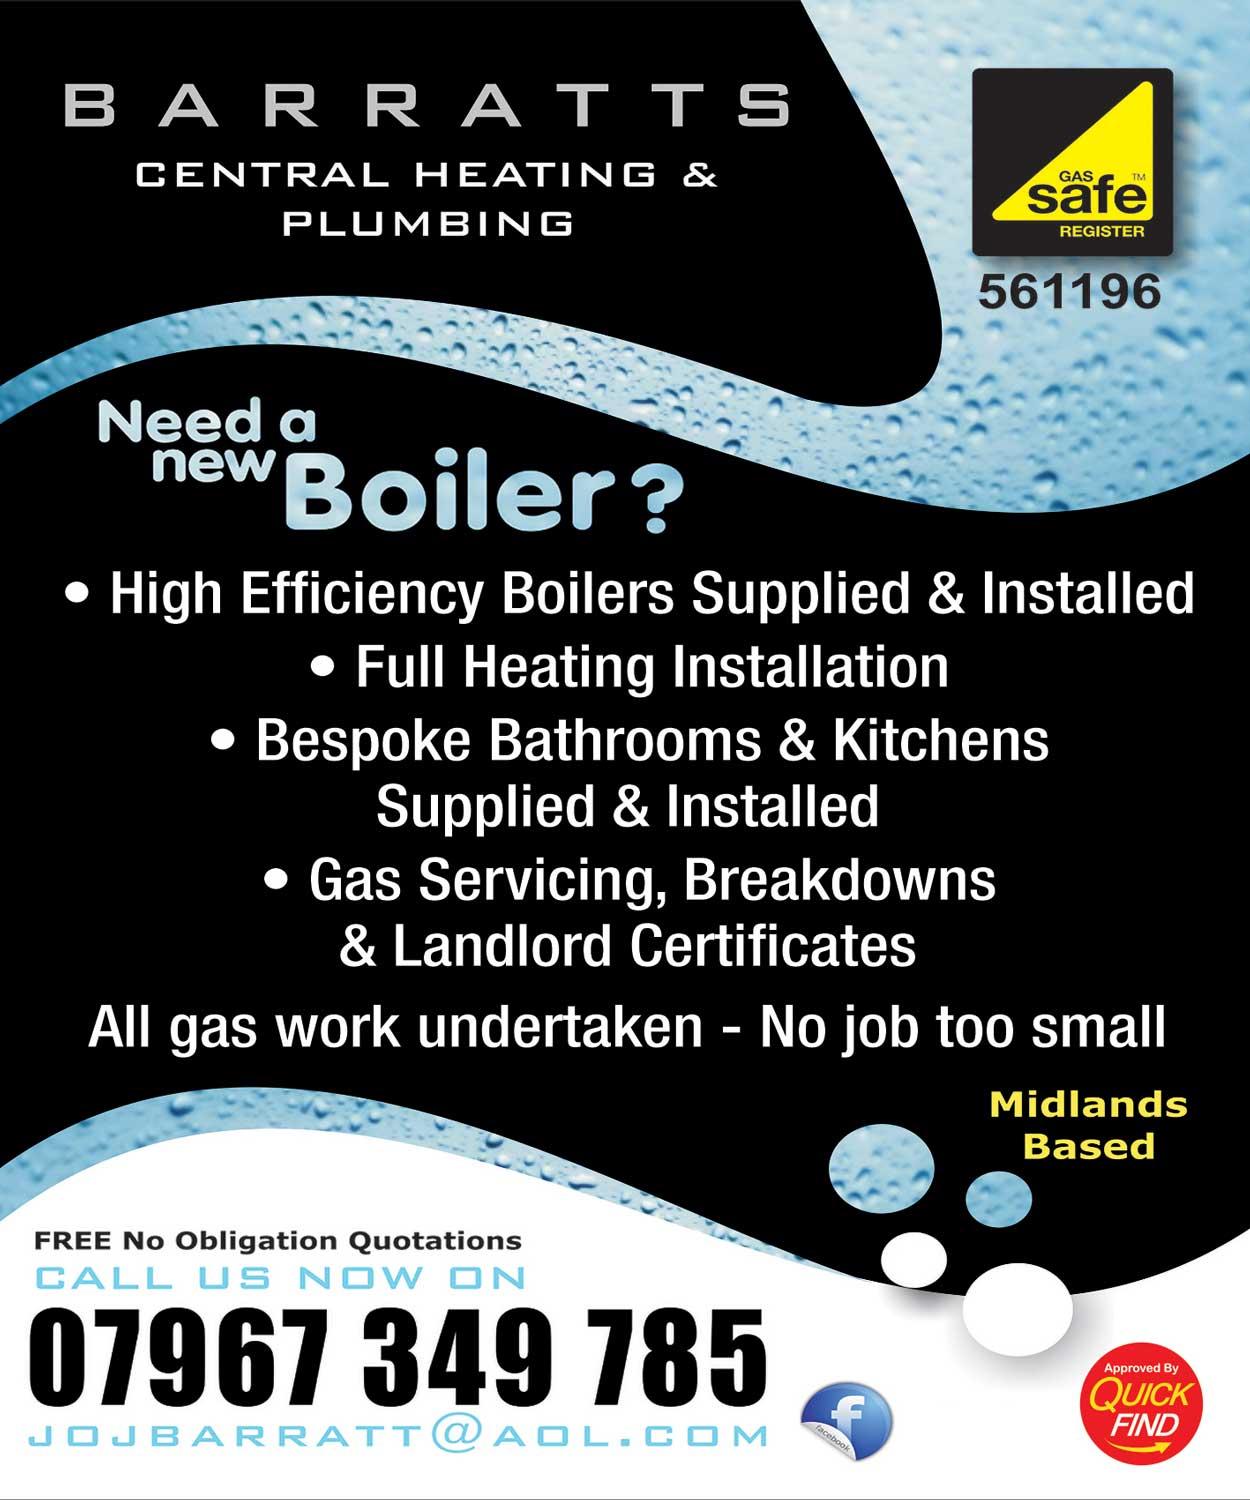 Barratts Central Heating and Plumbing